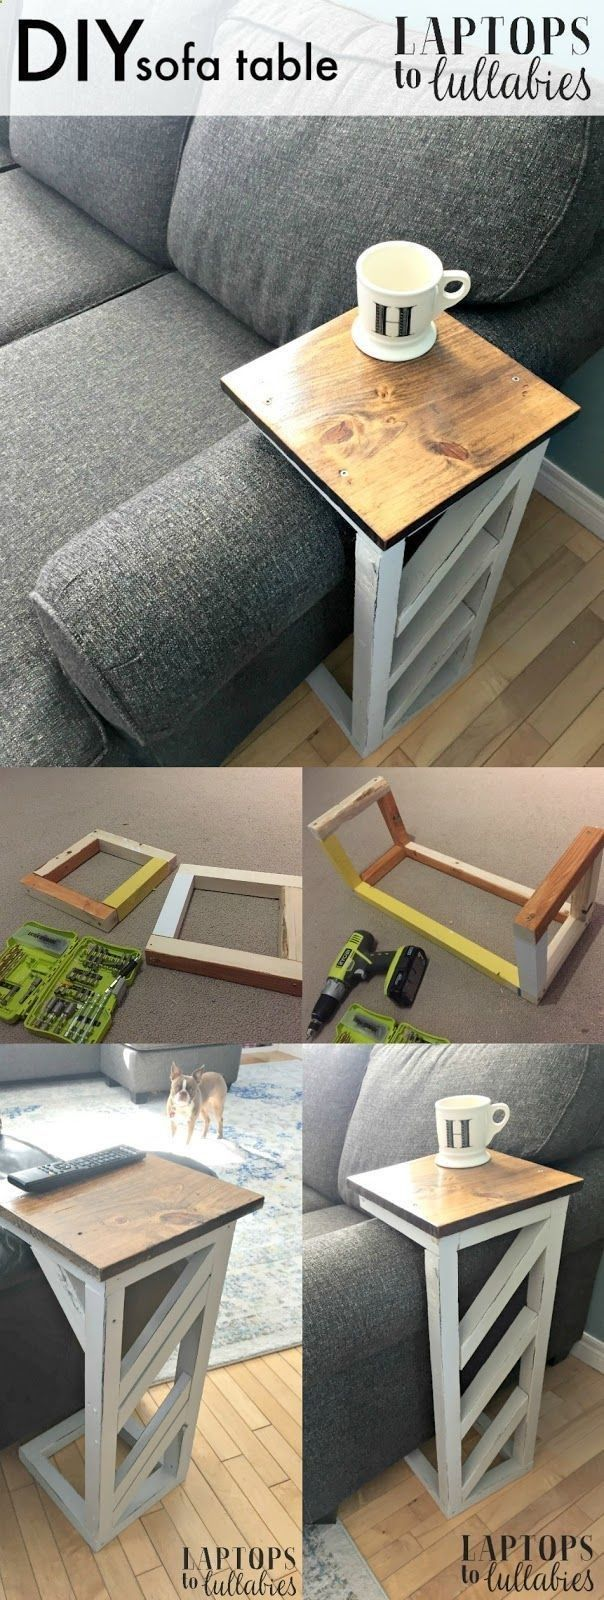 Teds Wood Working - DIY Life Hacks  Crafts : Laptops to Lullabies: Easy DIY sofa tables - Get A Lifetime Of Project Ideas & Inspiration!